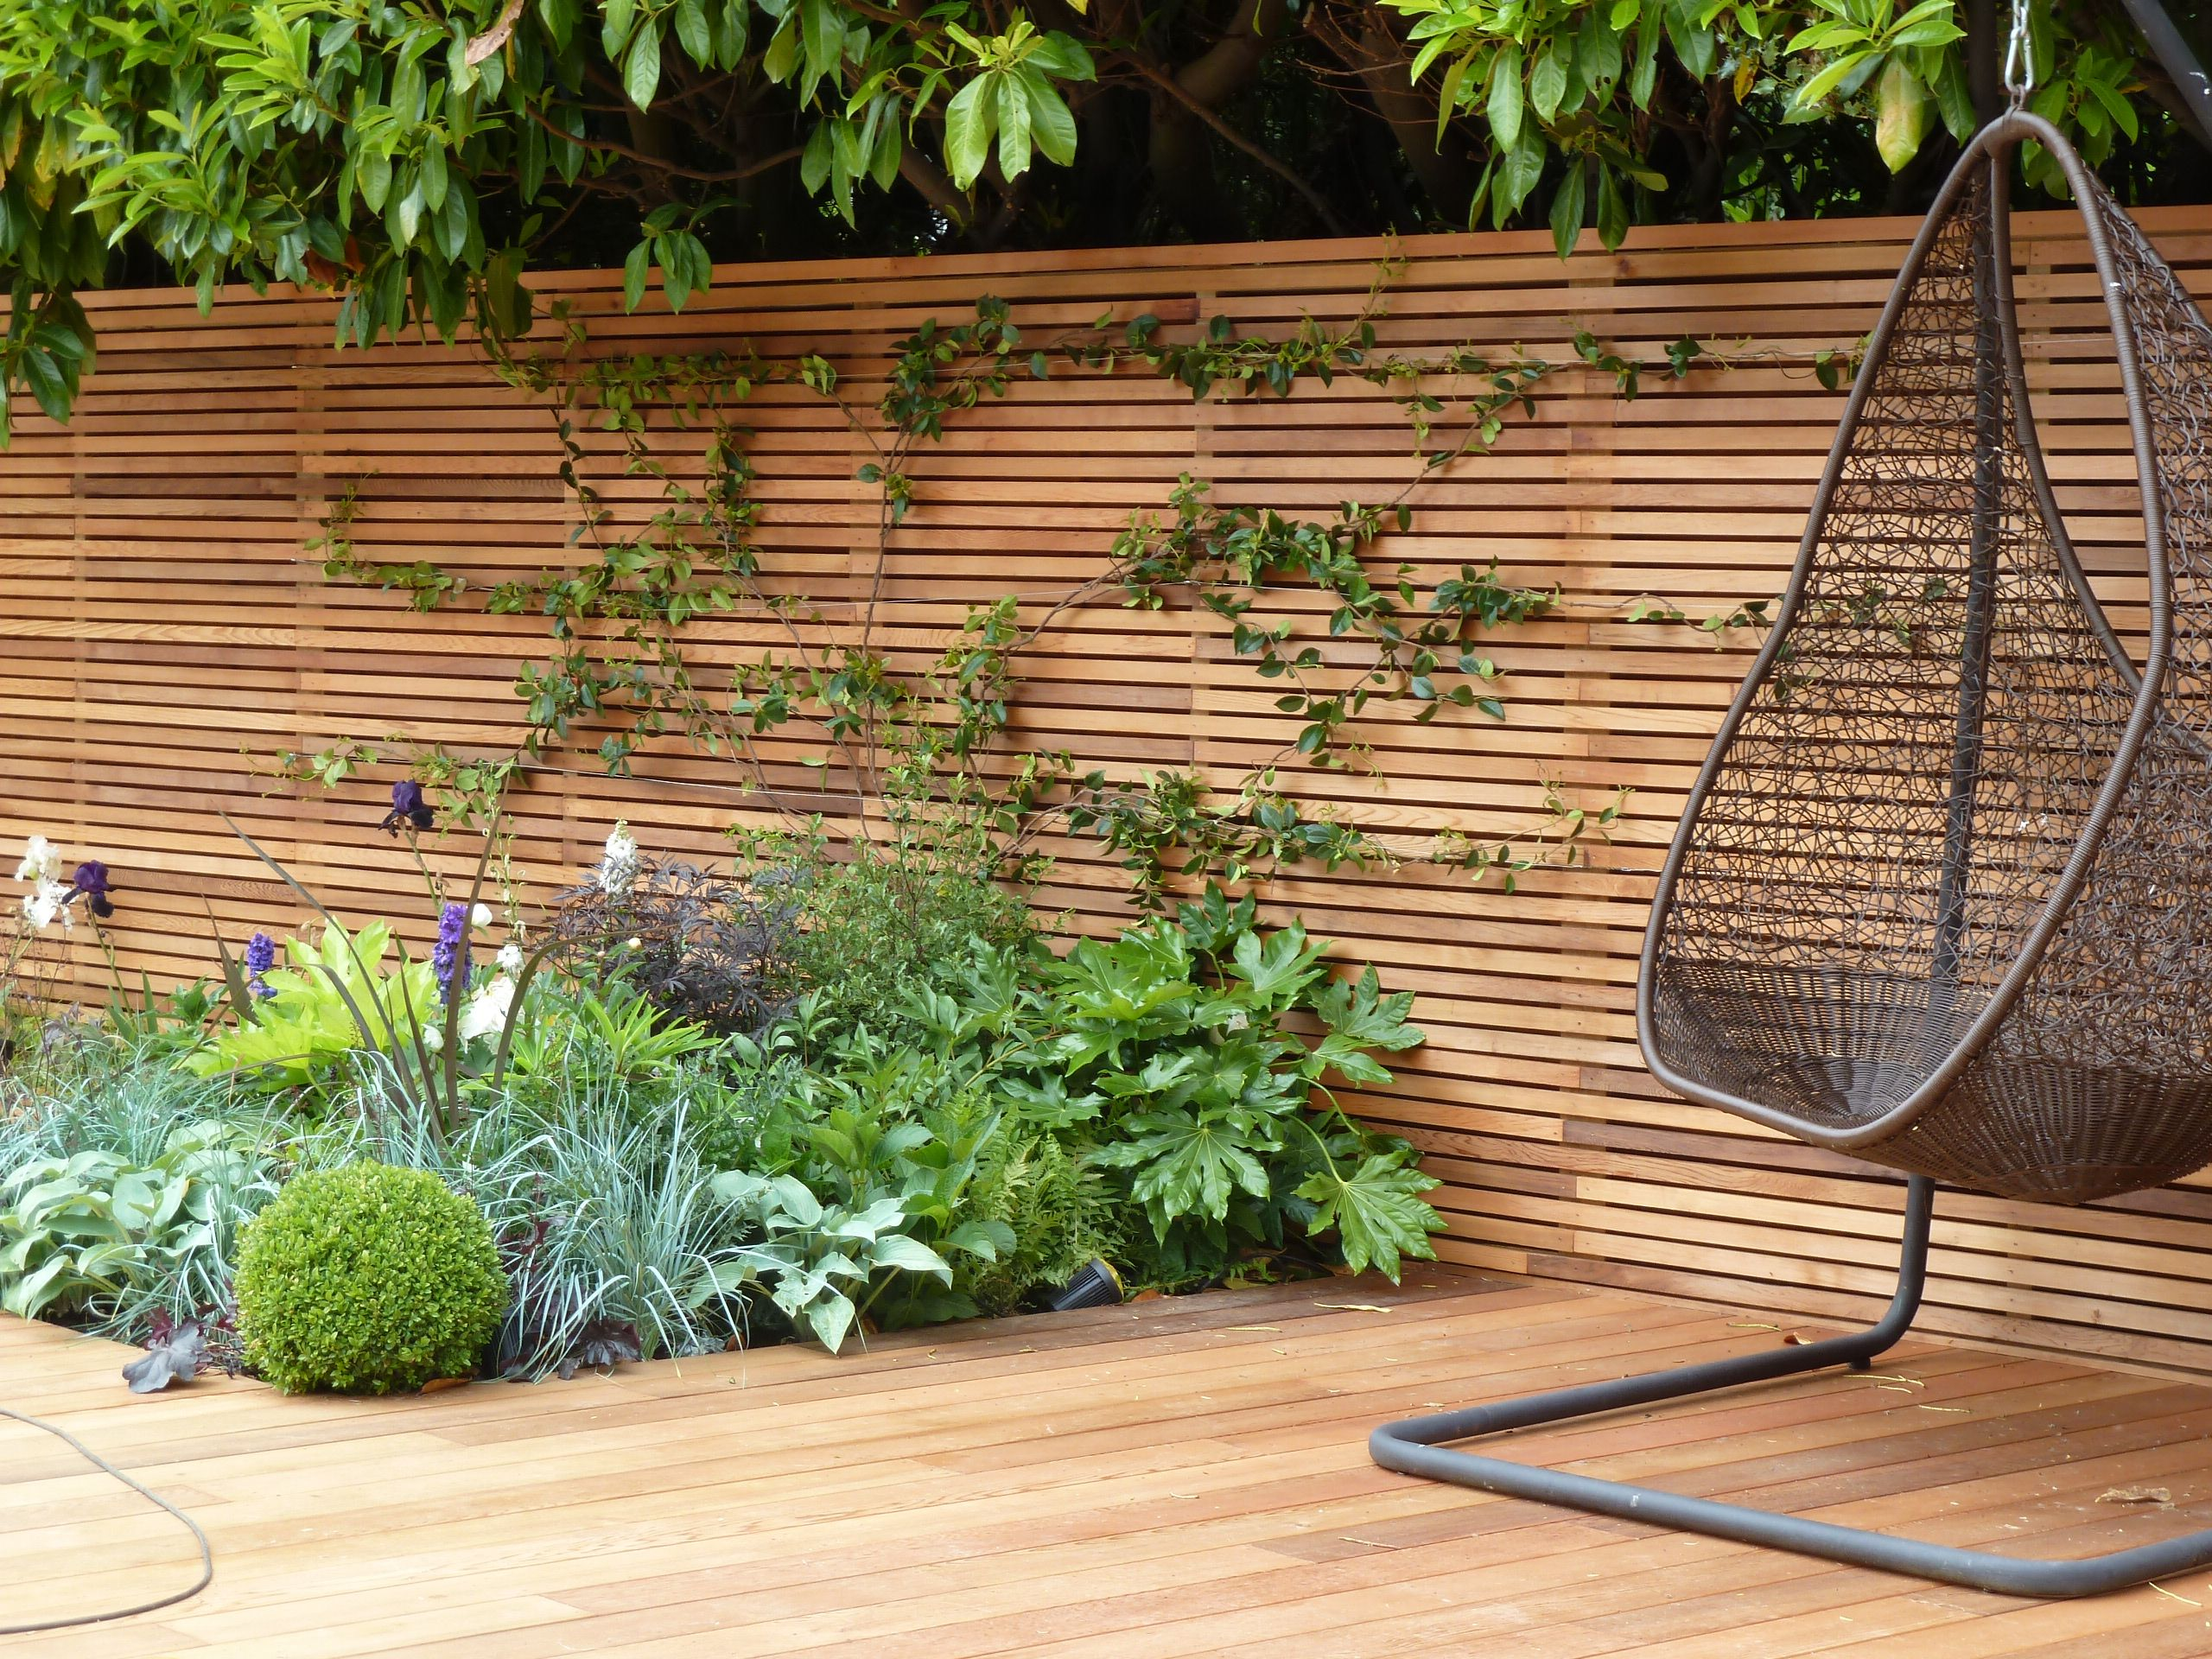 Home. Backyard FencesGarden FencesHorizontal FenceCourtyard GardensOutdoor  GardensOutdoor Privacy ScreensBackyard ...